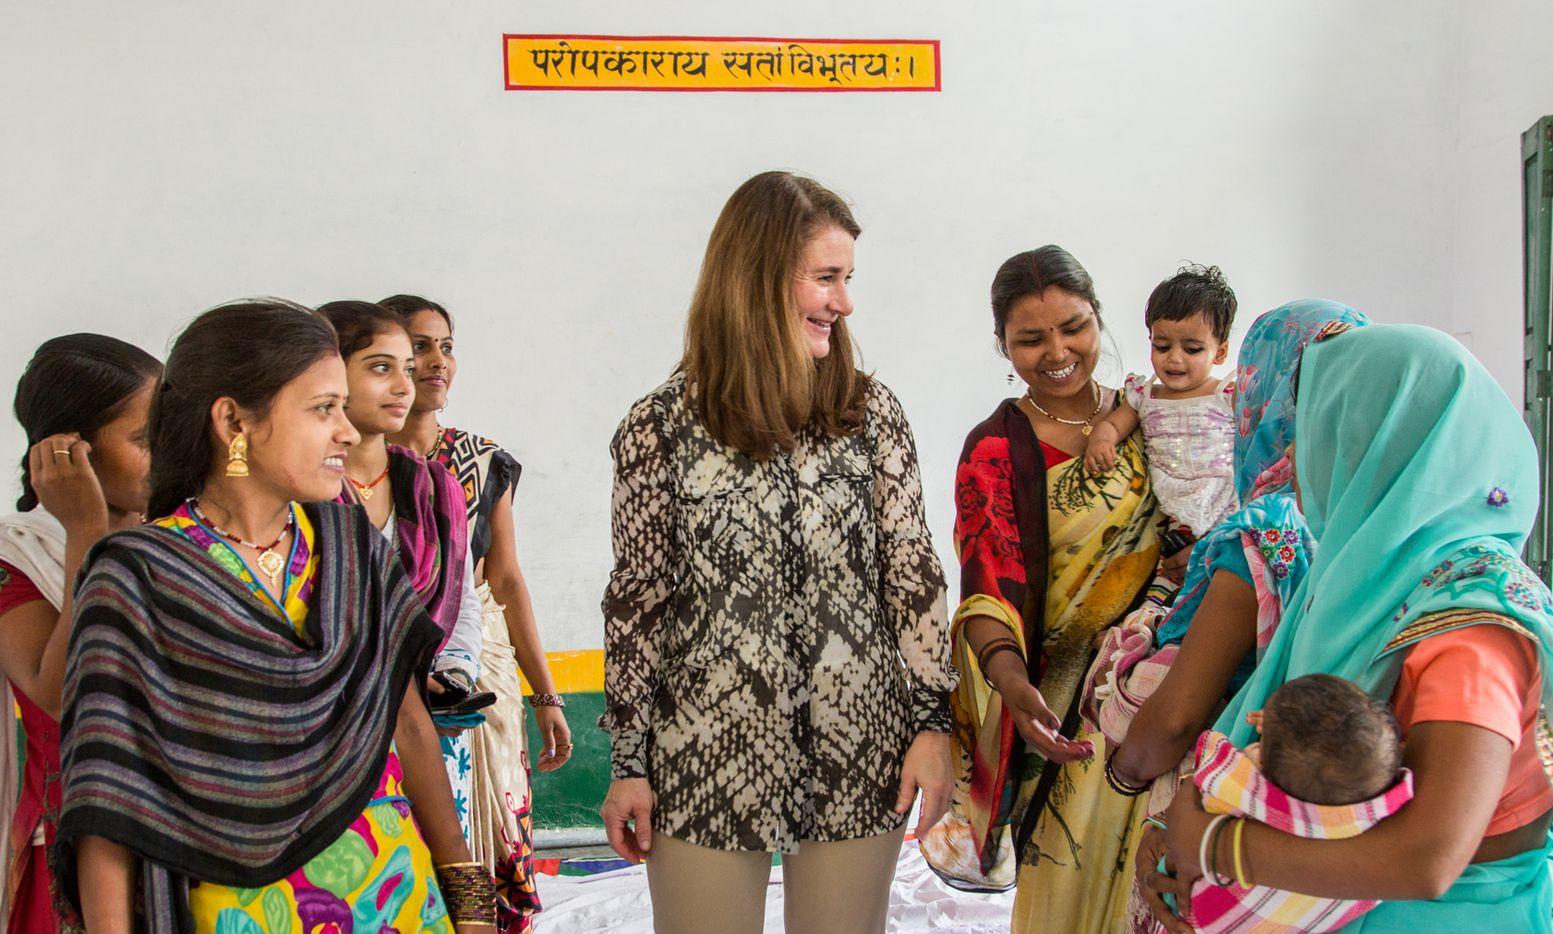 Melinda Gates, Co-chair of Bill and Melinda Gates Foundation, interacts with young married women who belong to a YWSHG (Young Women Self Help Group) in a room in the Government Primary School during her visit to Kola village, Barabanki District, Uttar Pradesh, India on March 13, 2016.